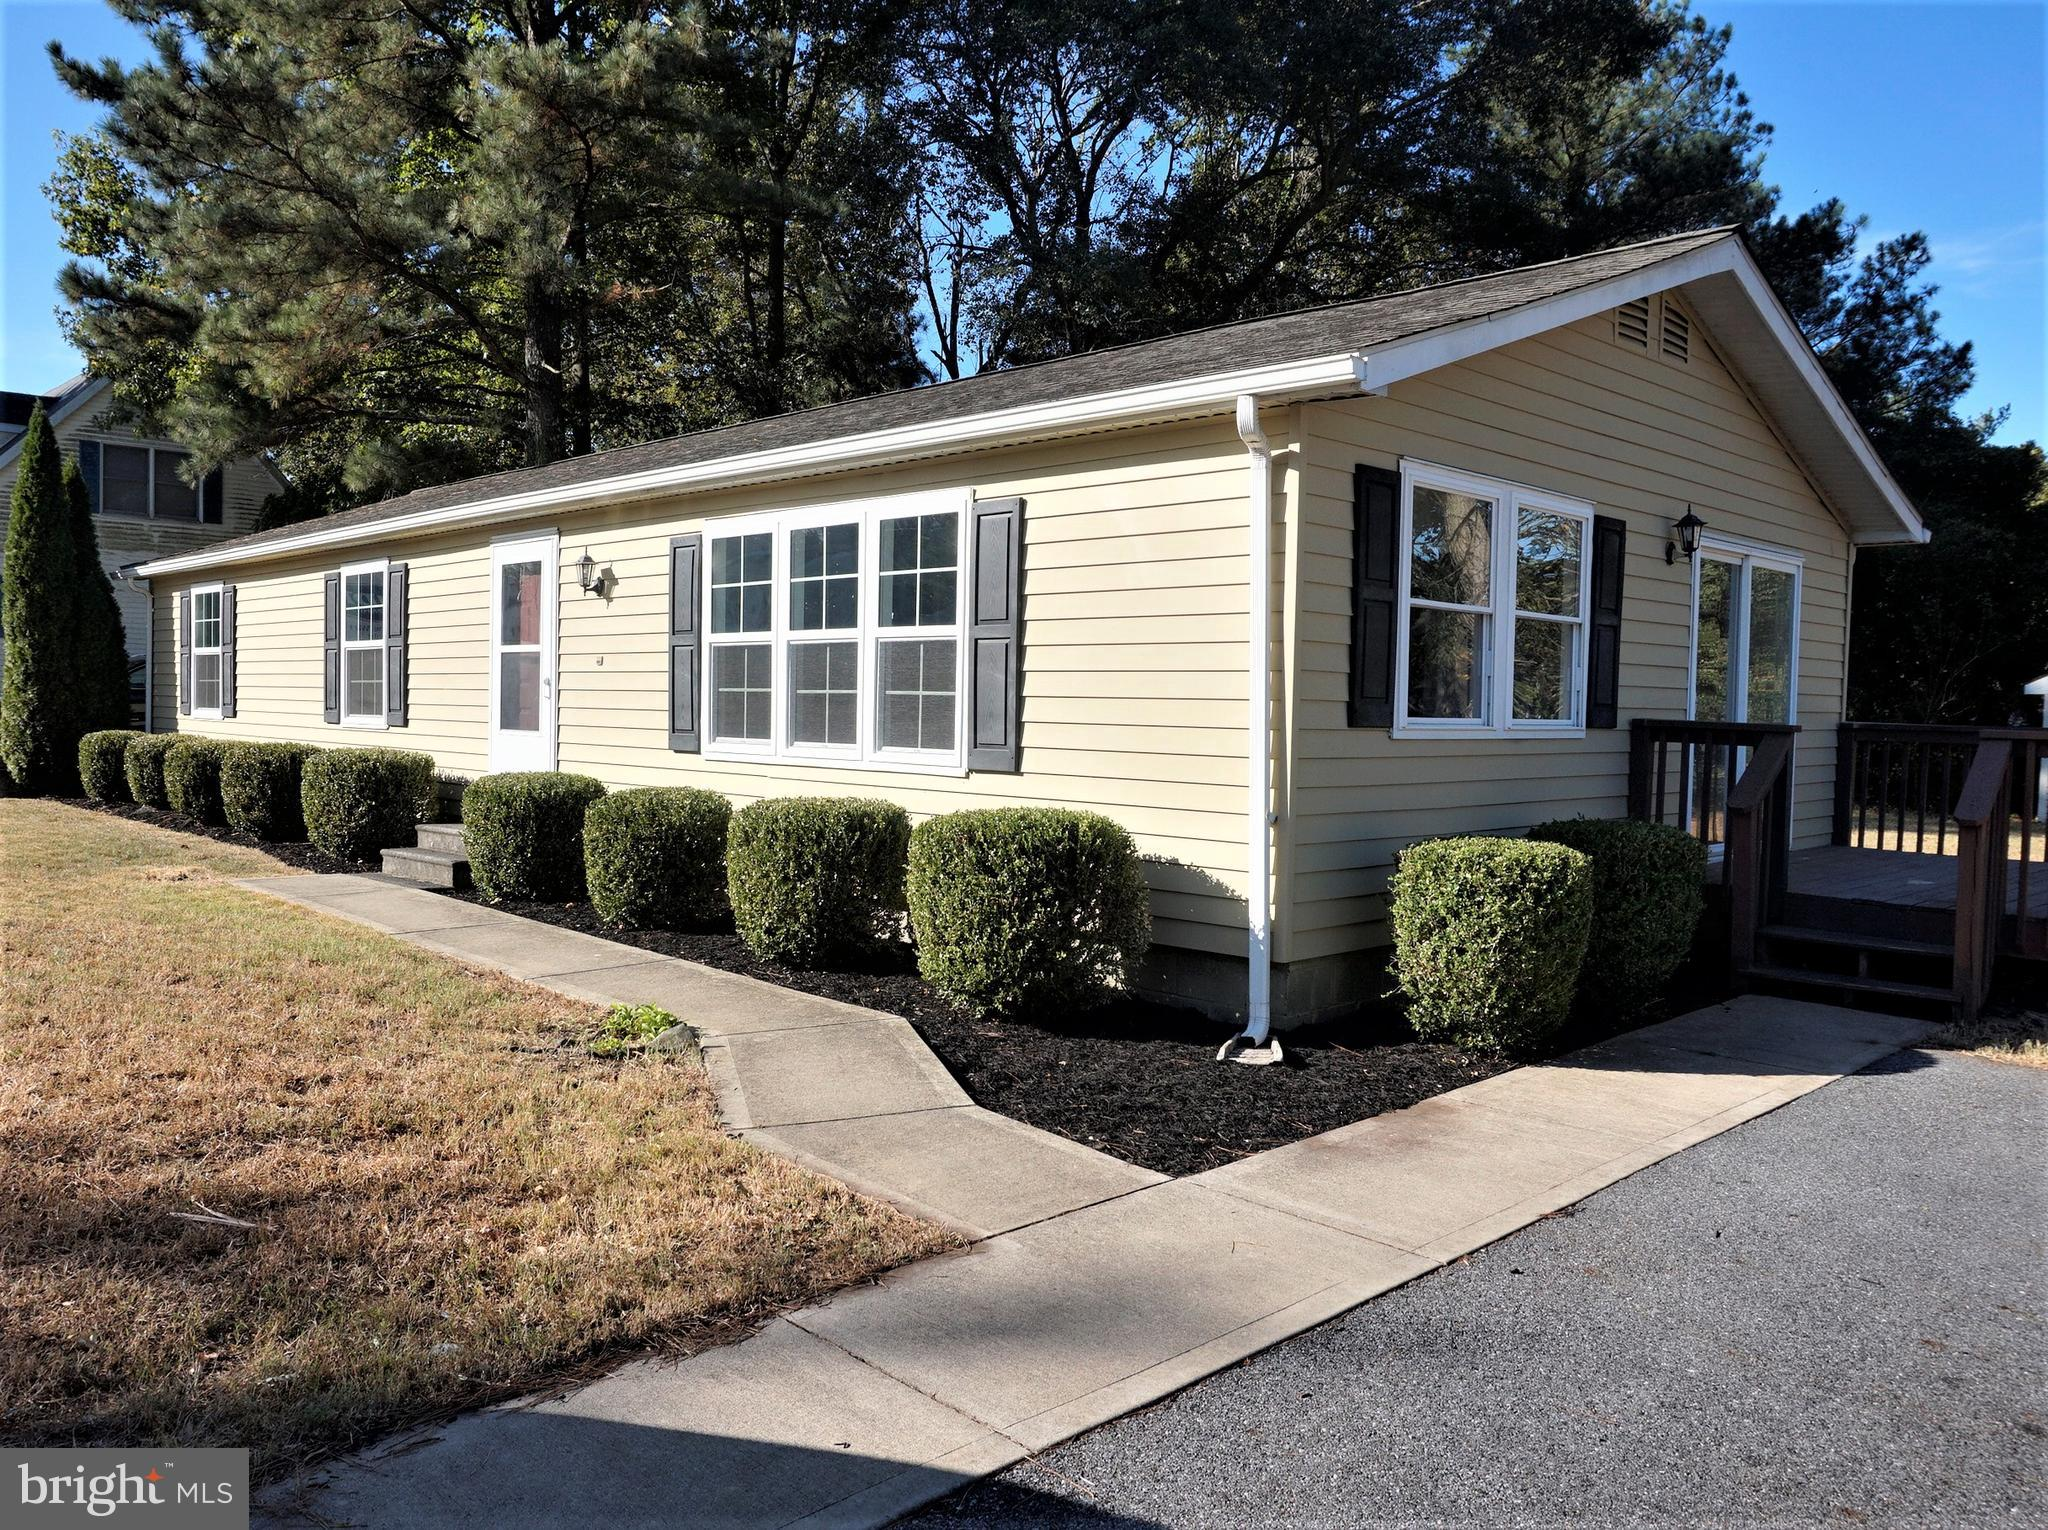 This 3 bedroom, 2 bath ranch is located near Rt. 13 in a quiet neighborhood. Features a great floor